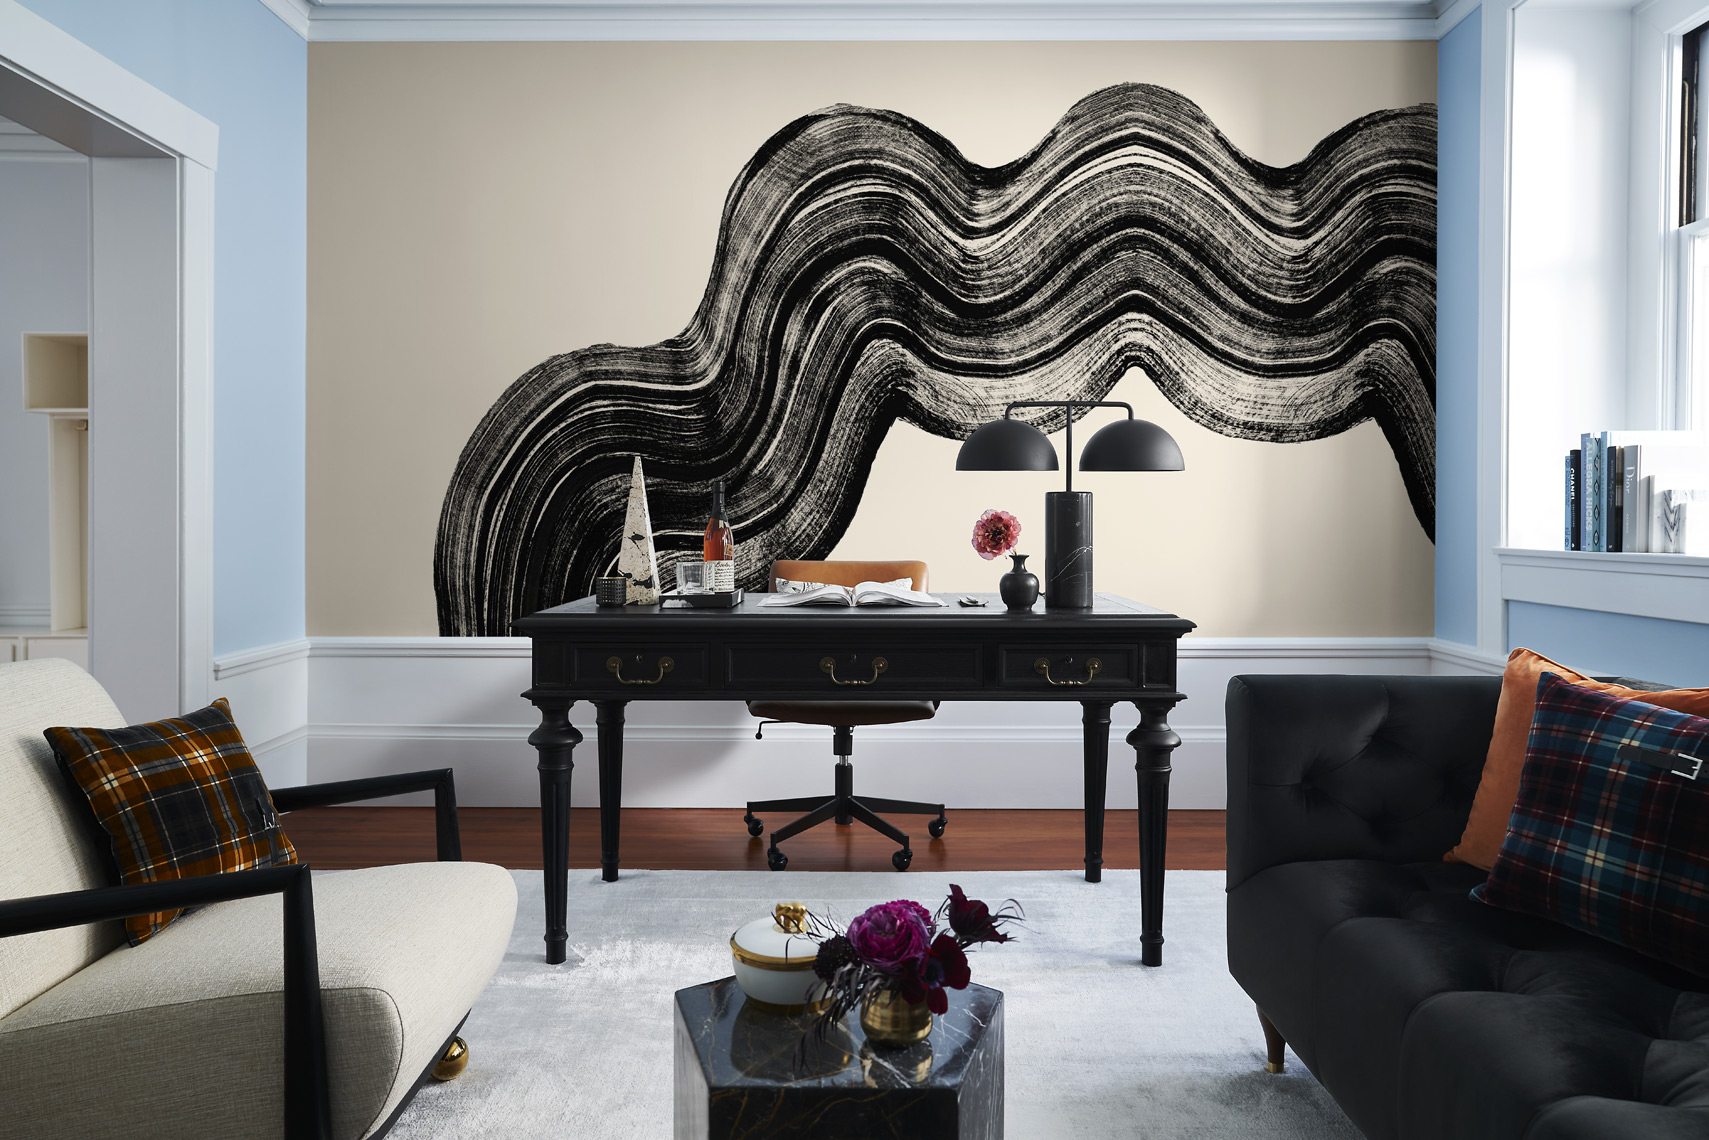 rterior-studio-los-angeles-ca-edwardian-beauty-office-desk-with-large-wall-art